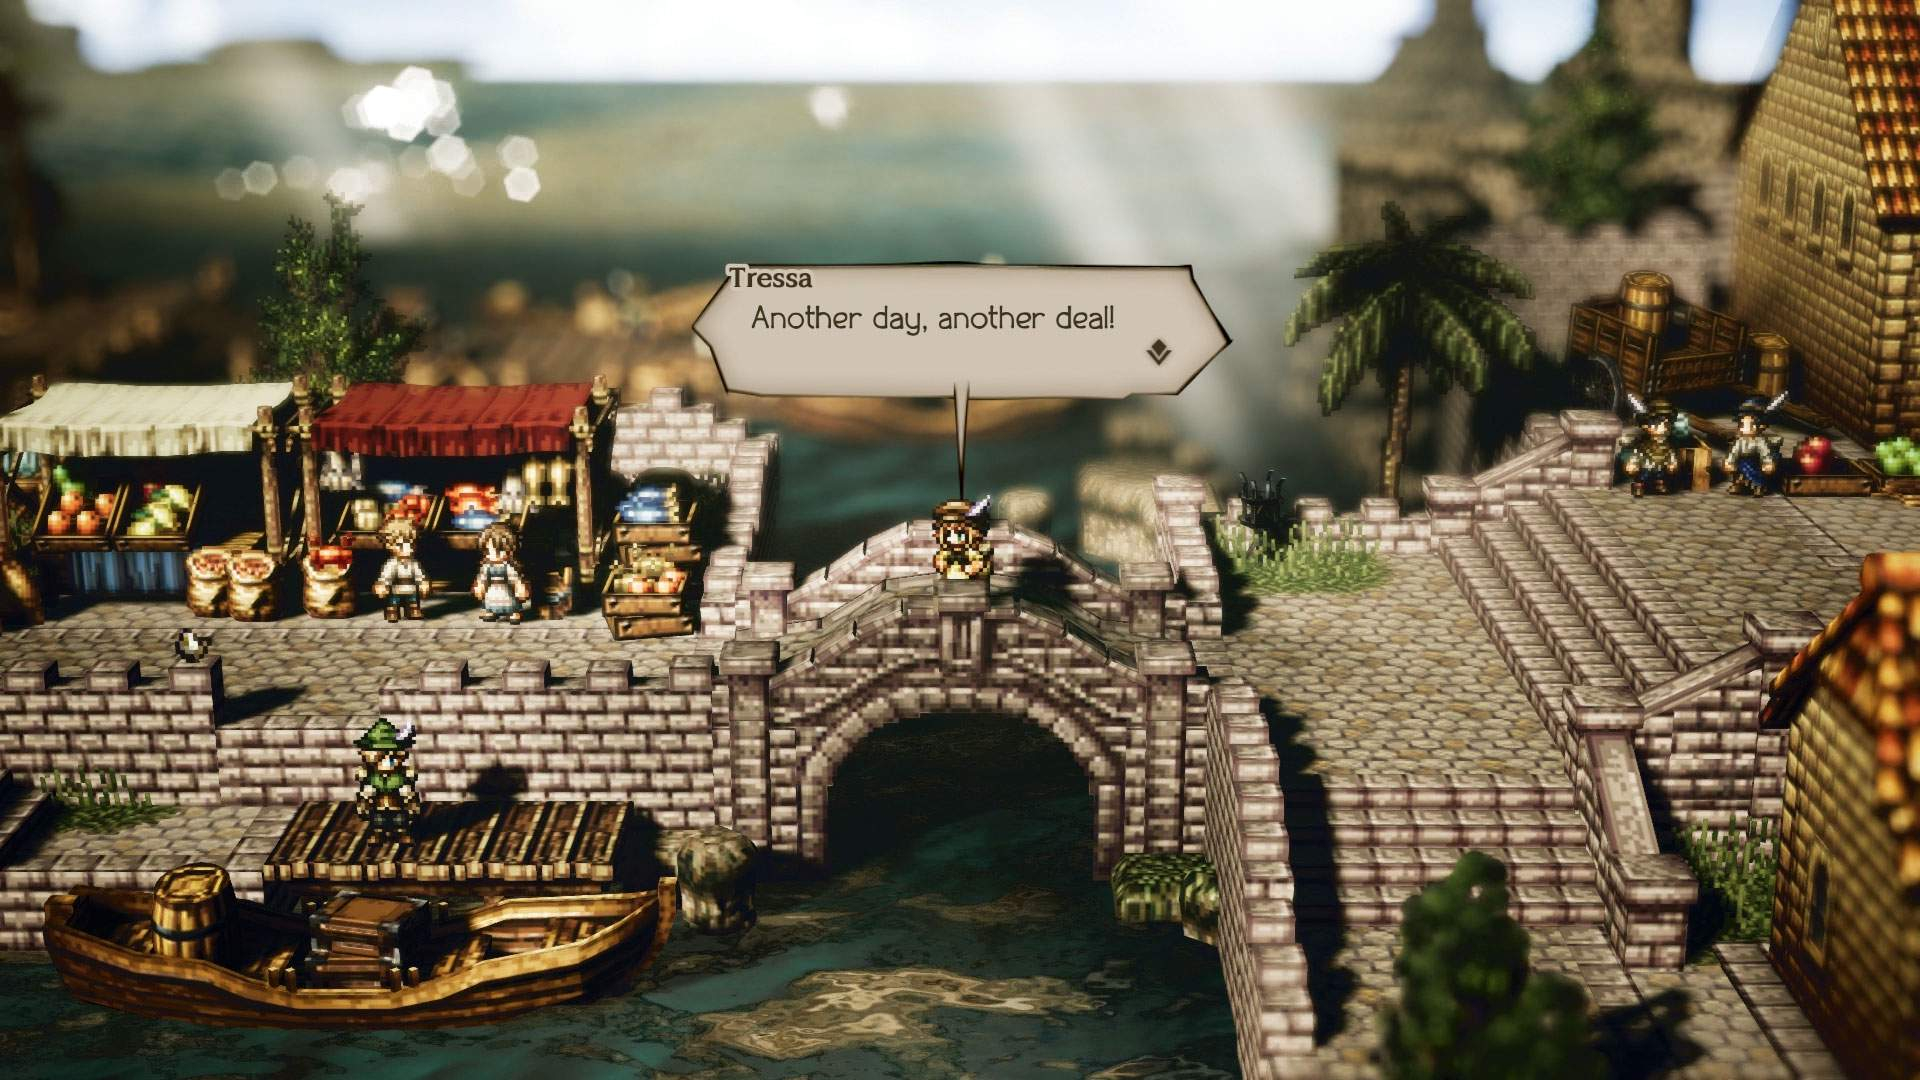 Gameplay screenshot showing Tressa standing on a bridge in the middle of a medieval-style town.